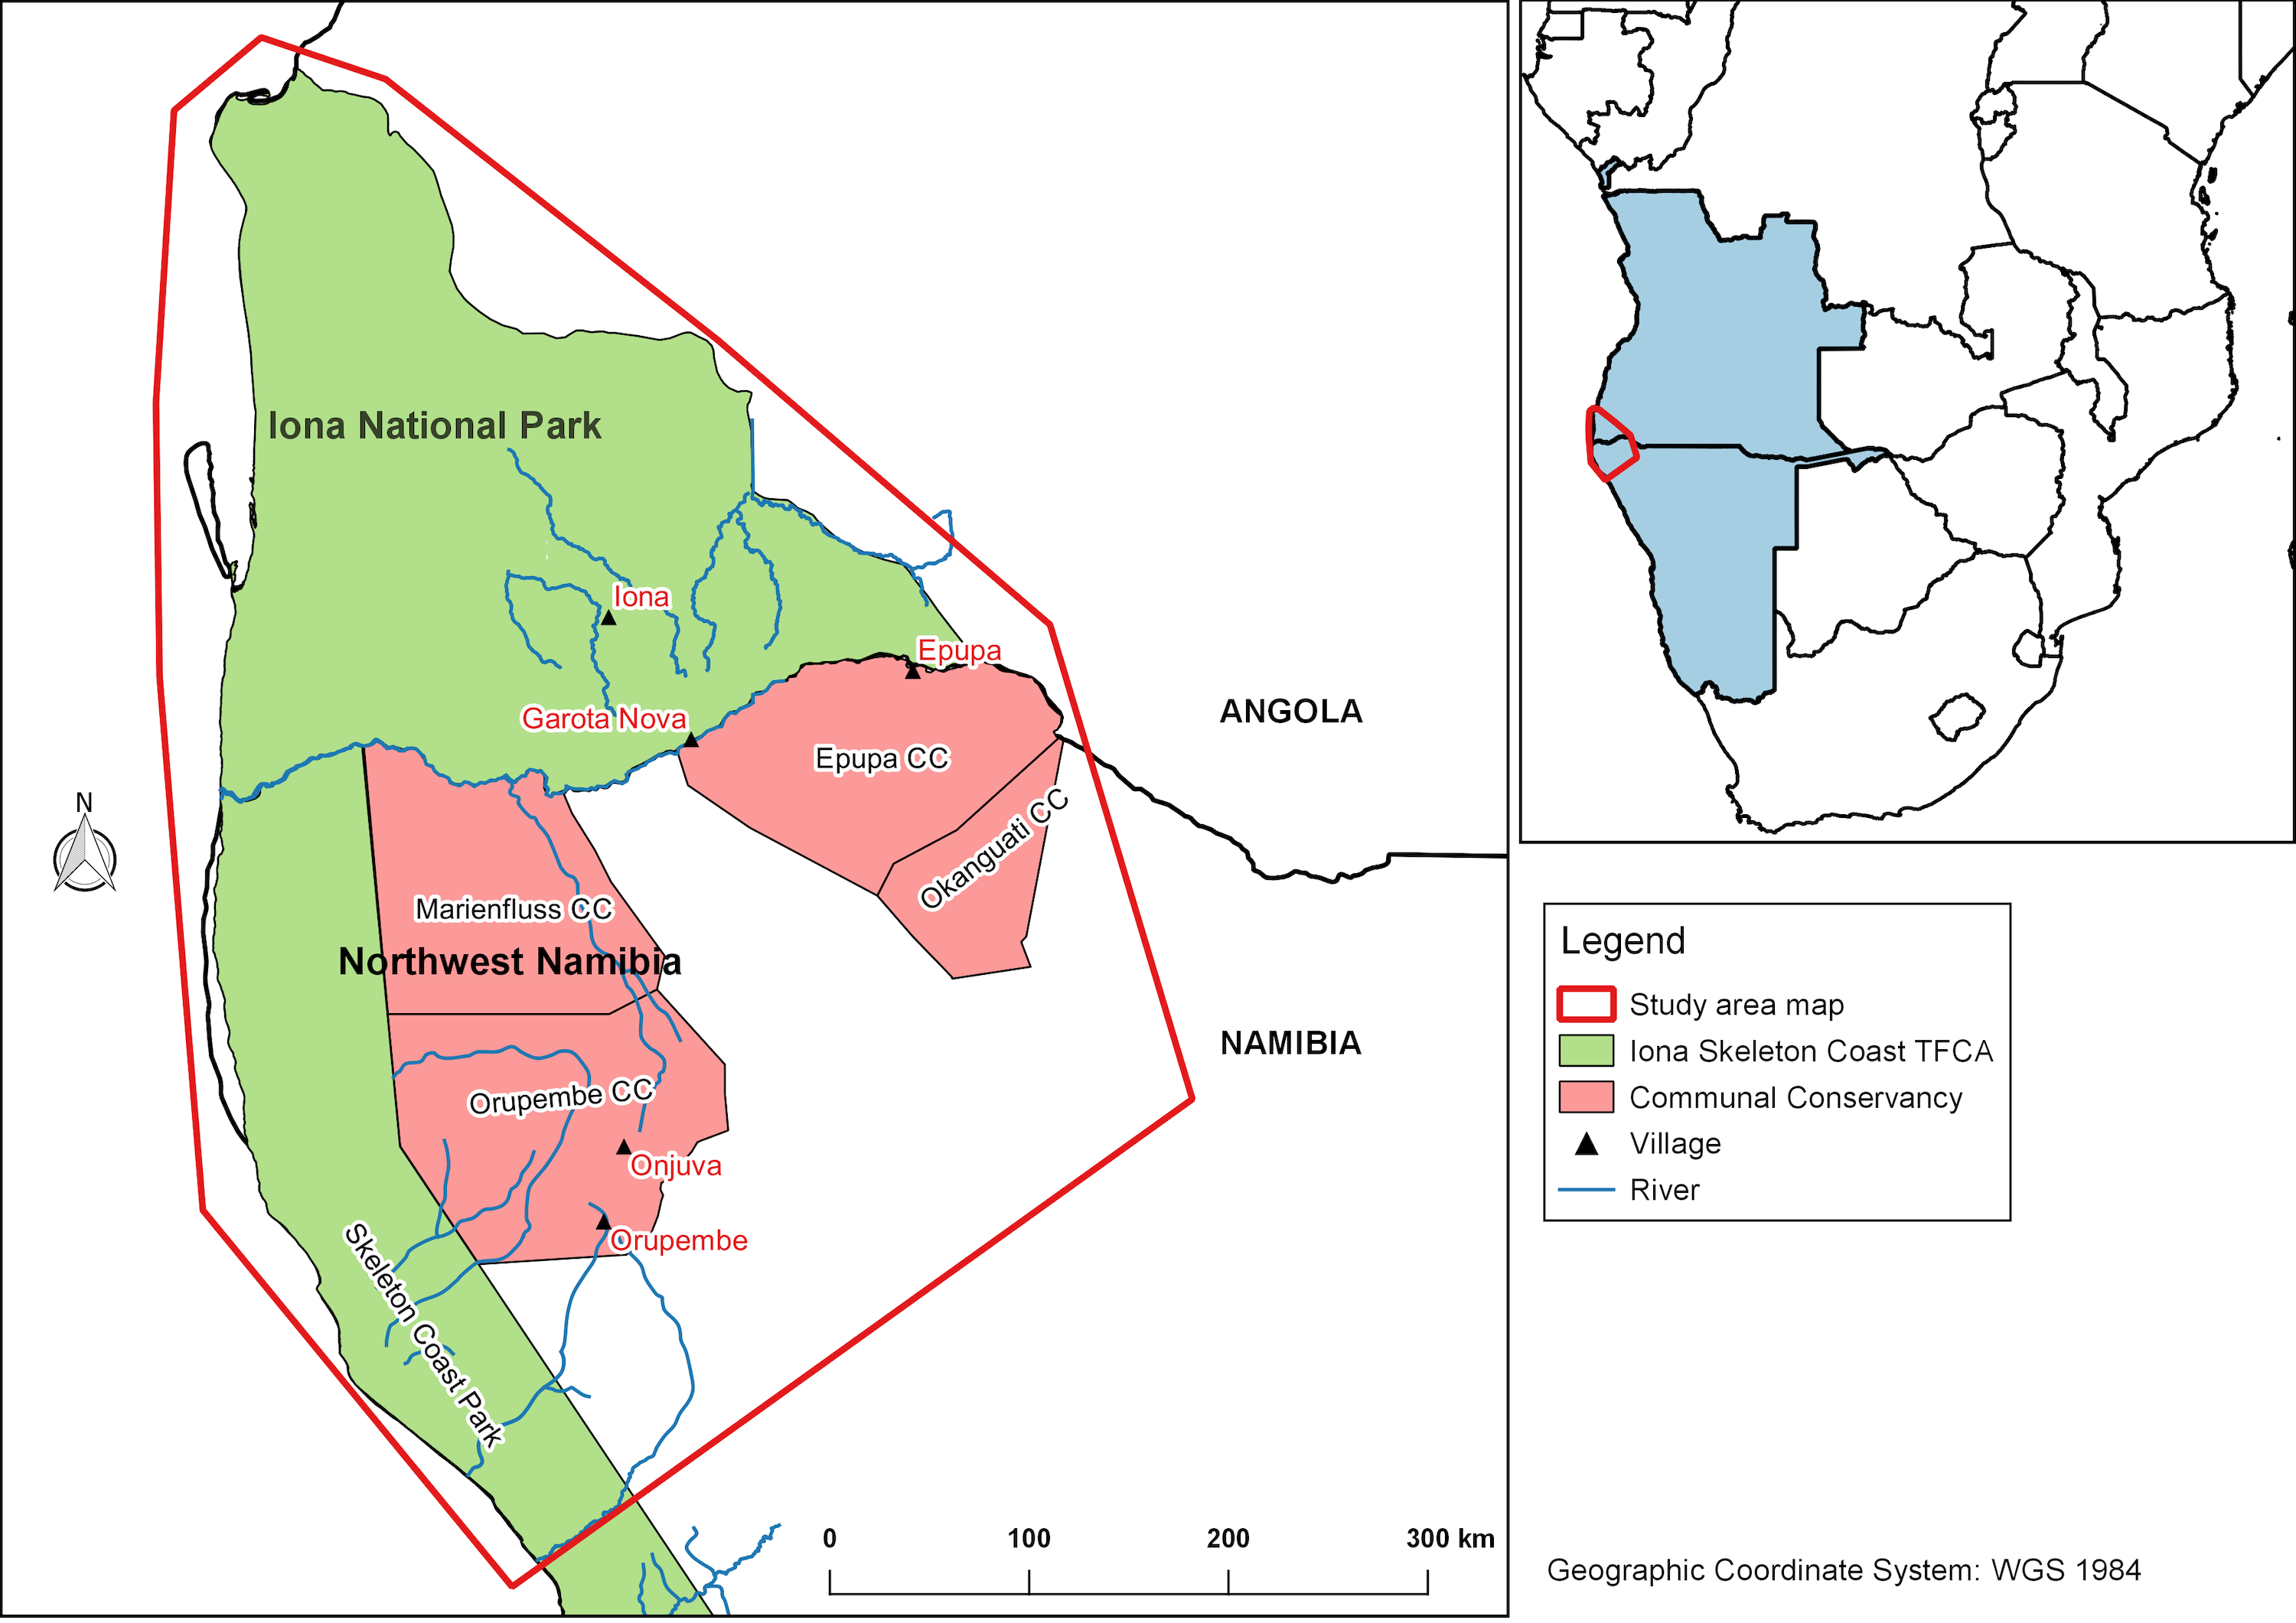 A map of the study area in the NW of Namibia and SW of Angola.